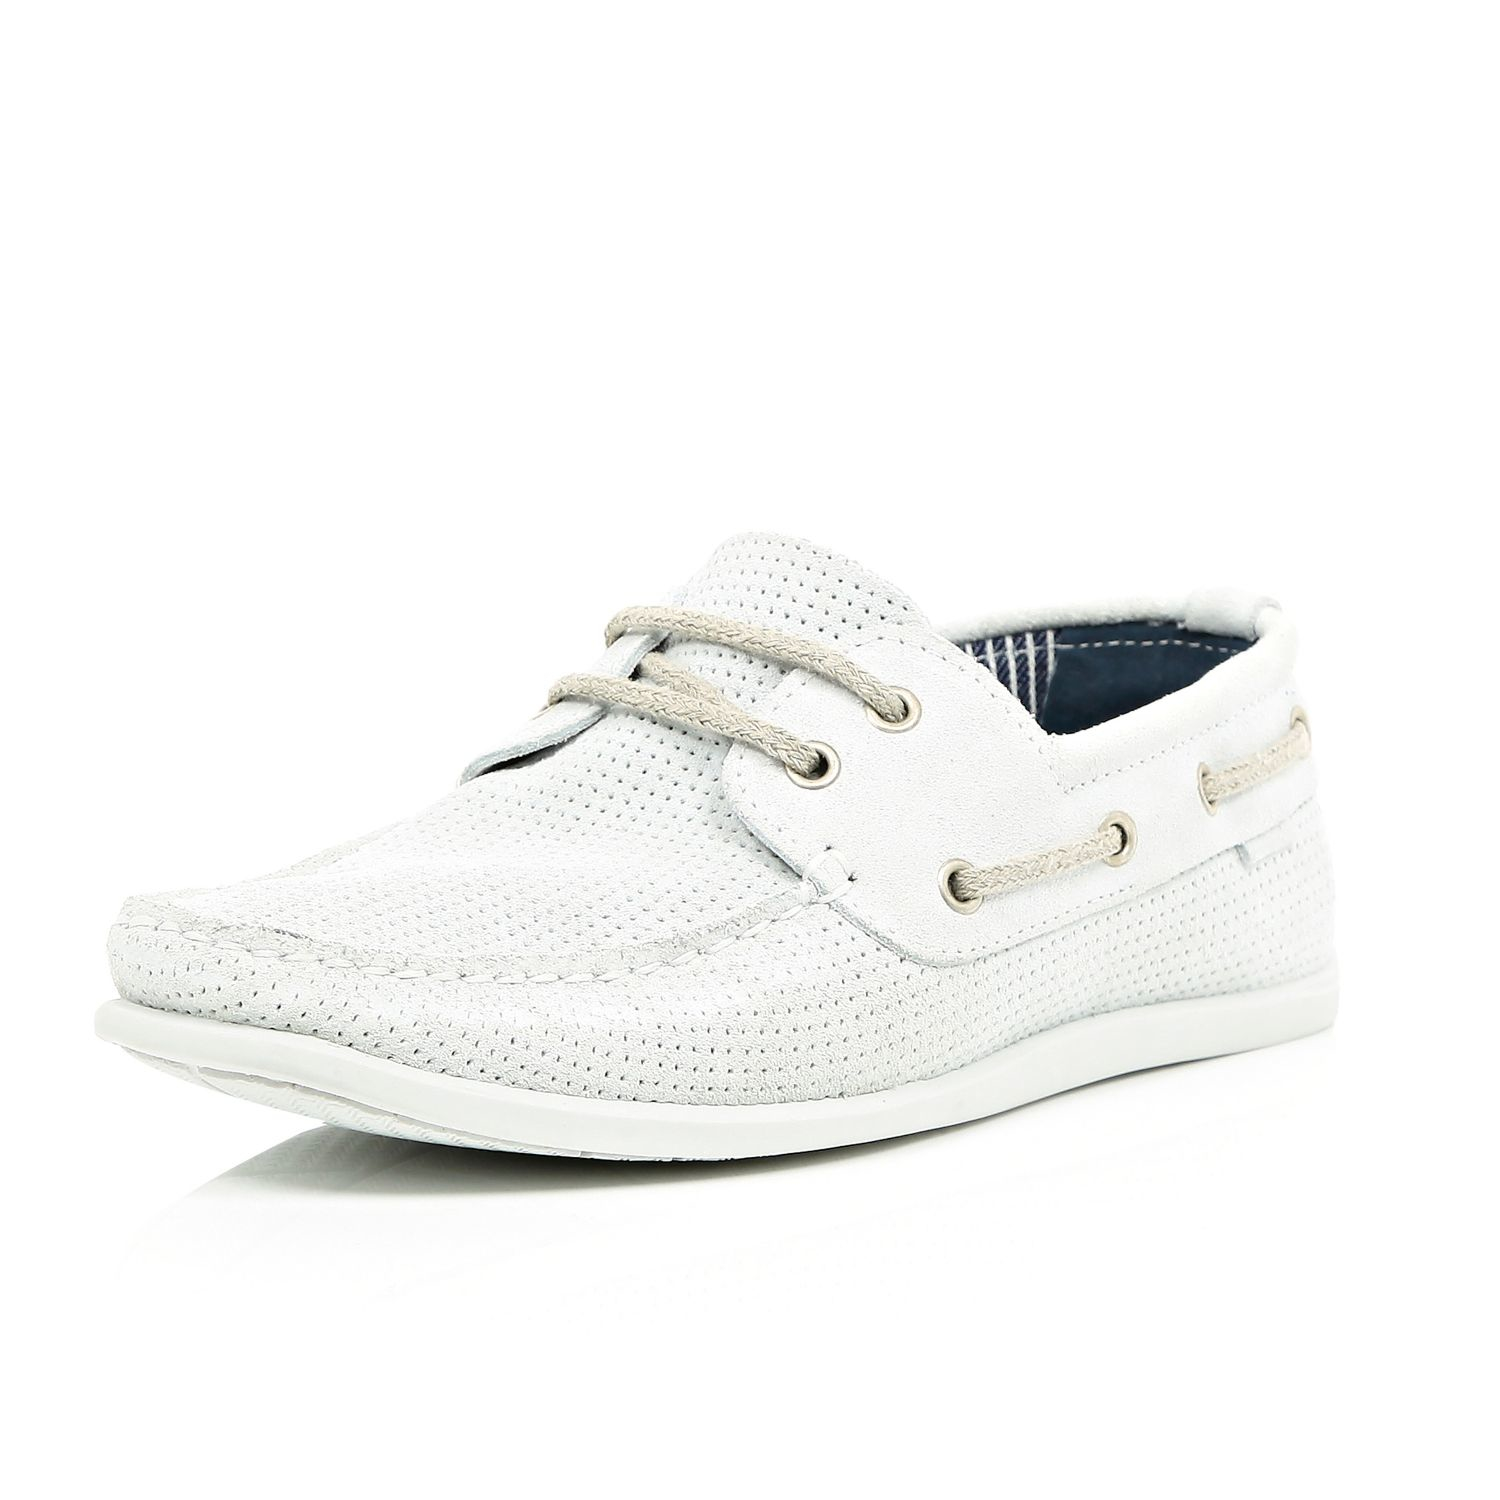 river island white perforated suede boat shoes in white